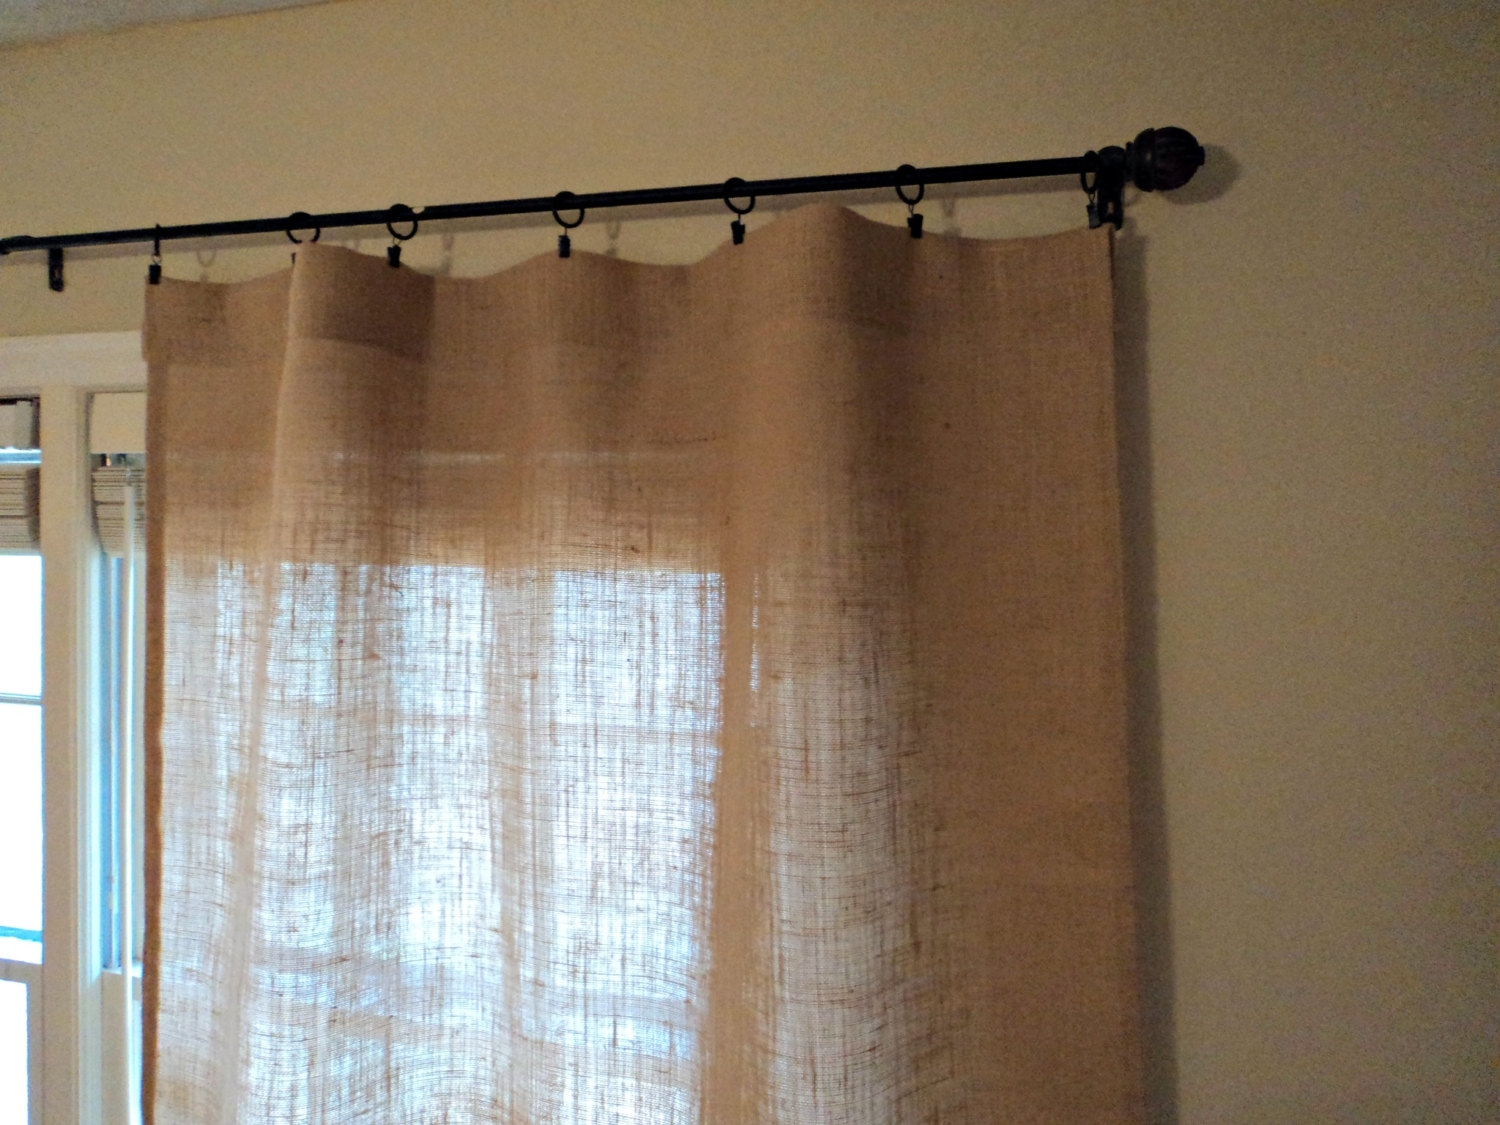 No Odor Burlap Curtains Hemmed Curtains Select Your Length Throughout Turquoise Burlap Curtains (View 7 of 15)